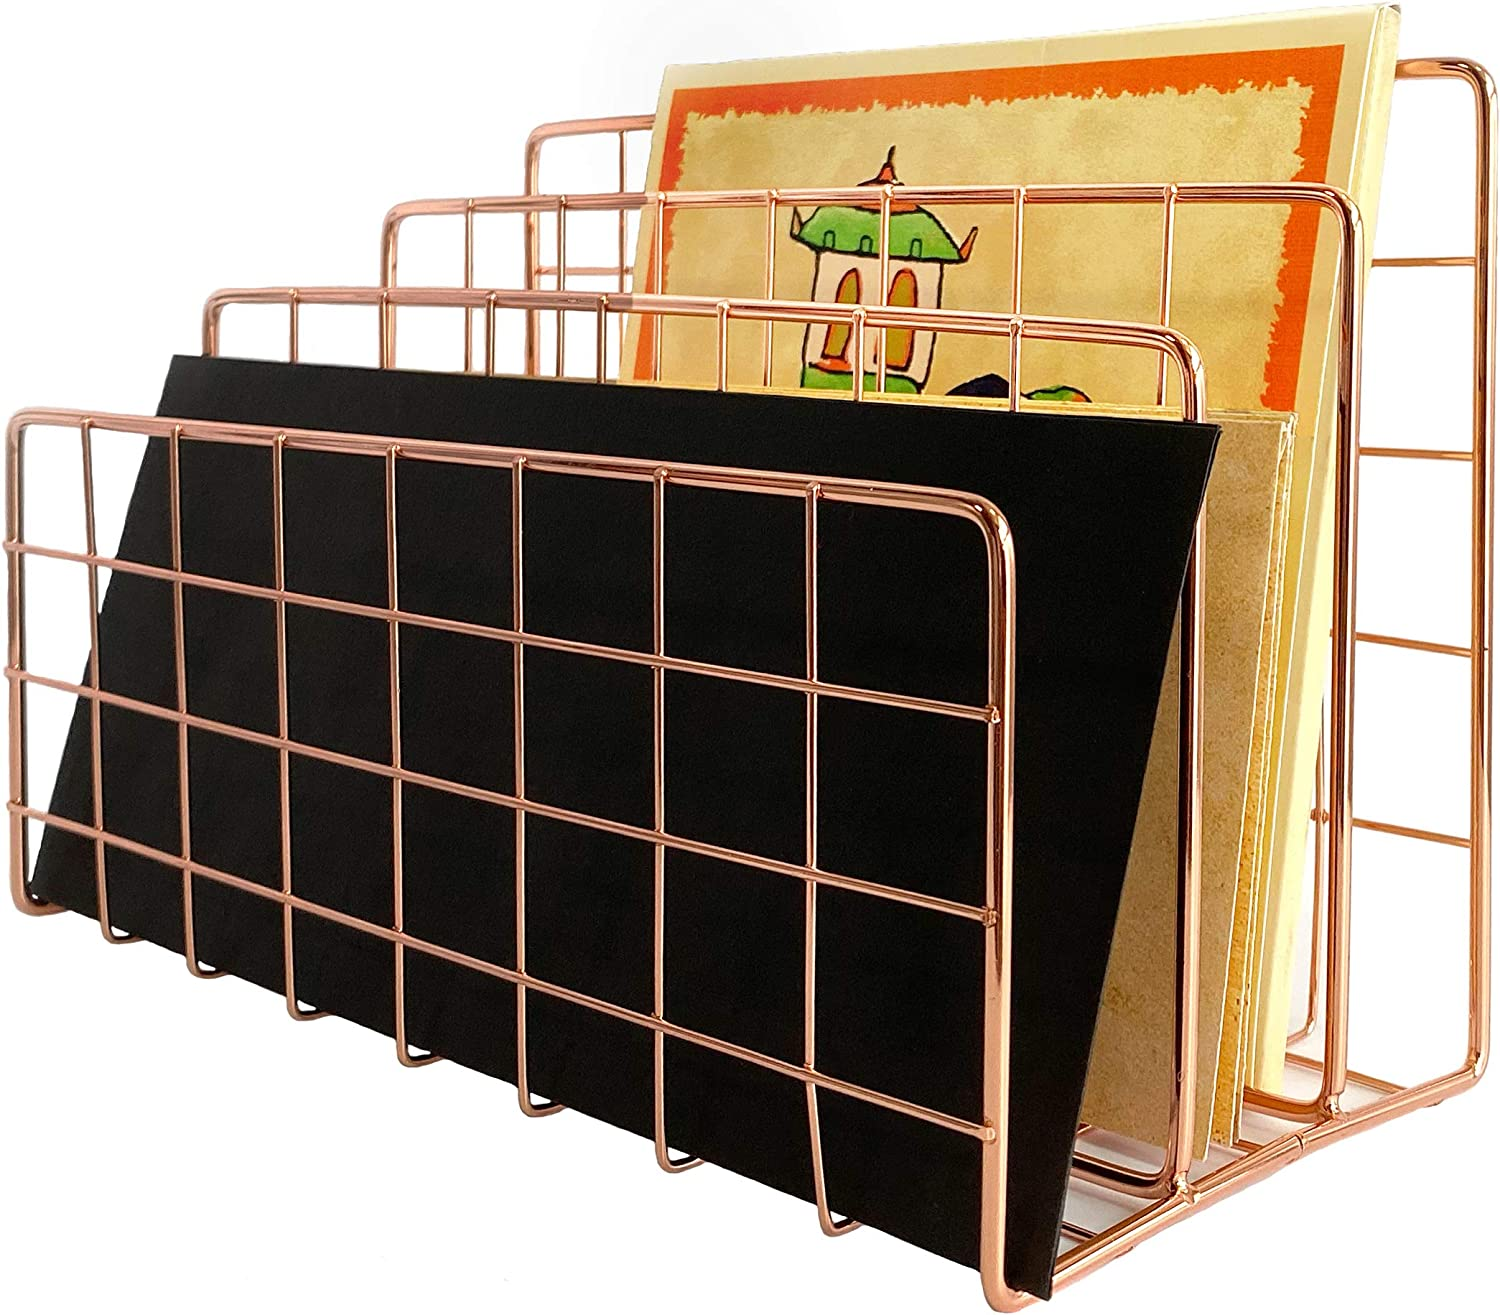 Max 63% OFF Mail Ranking TOP3 Organizer Countertop holder 3-Slot sort Rose mail gold